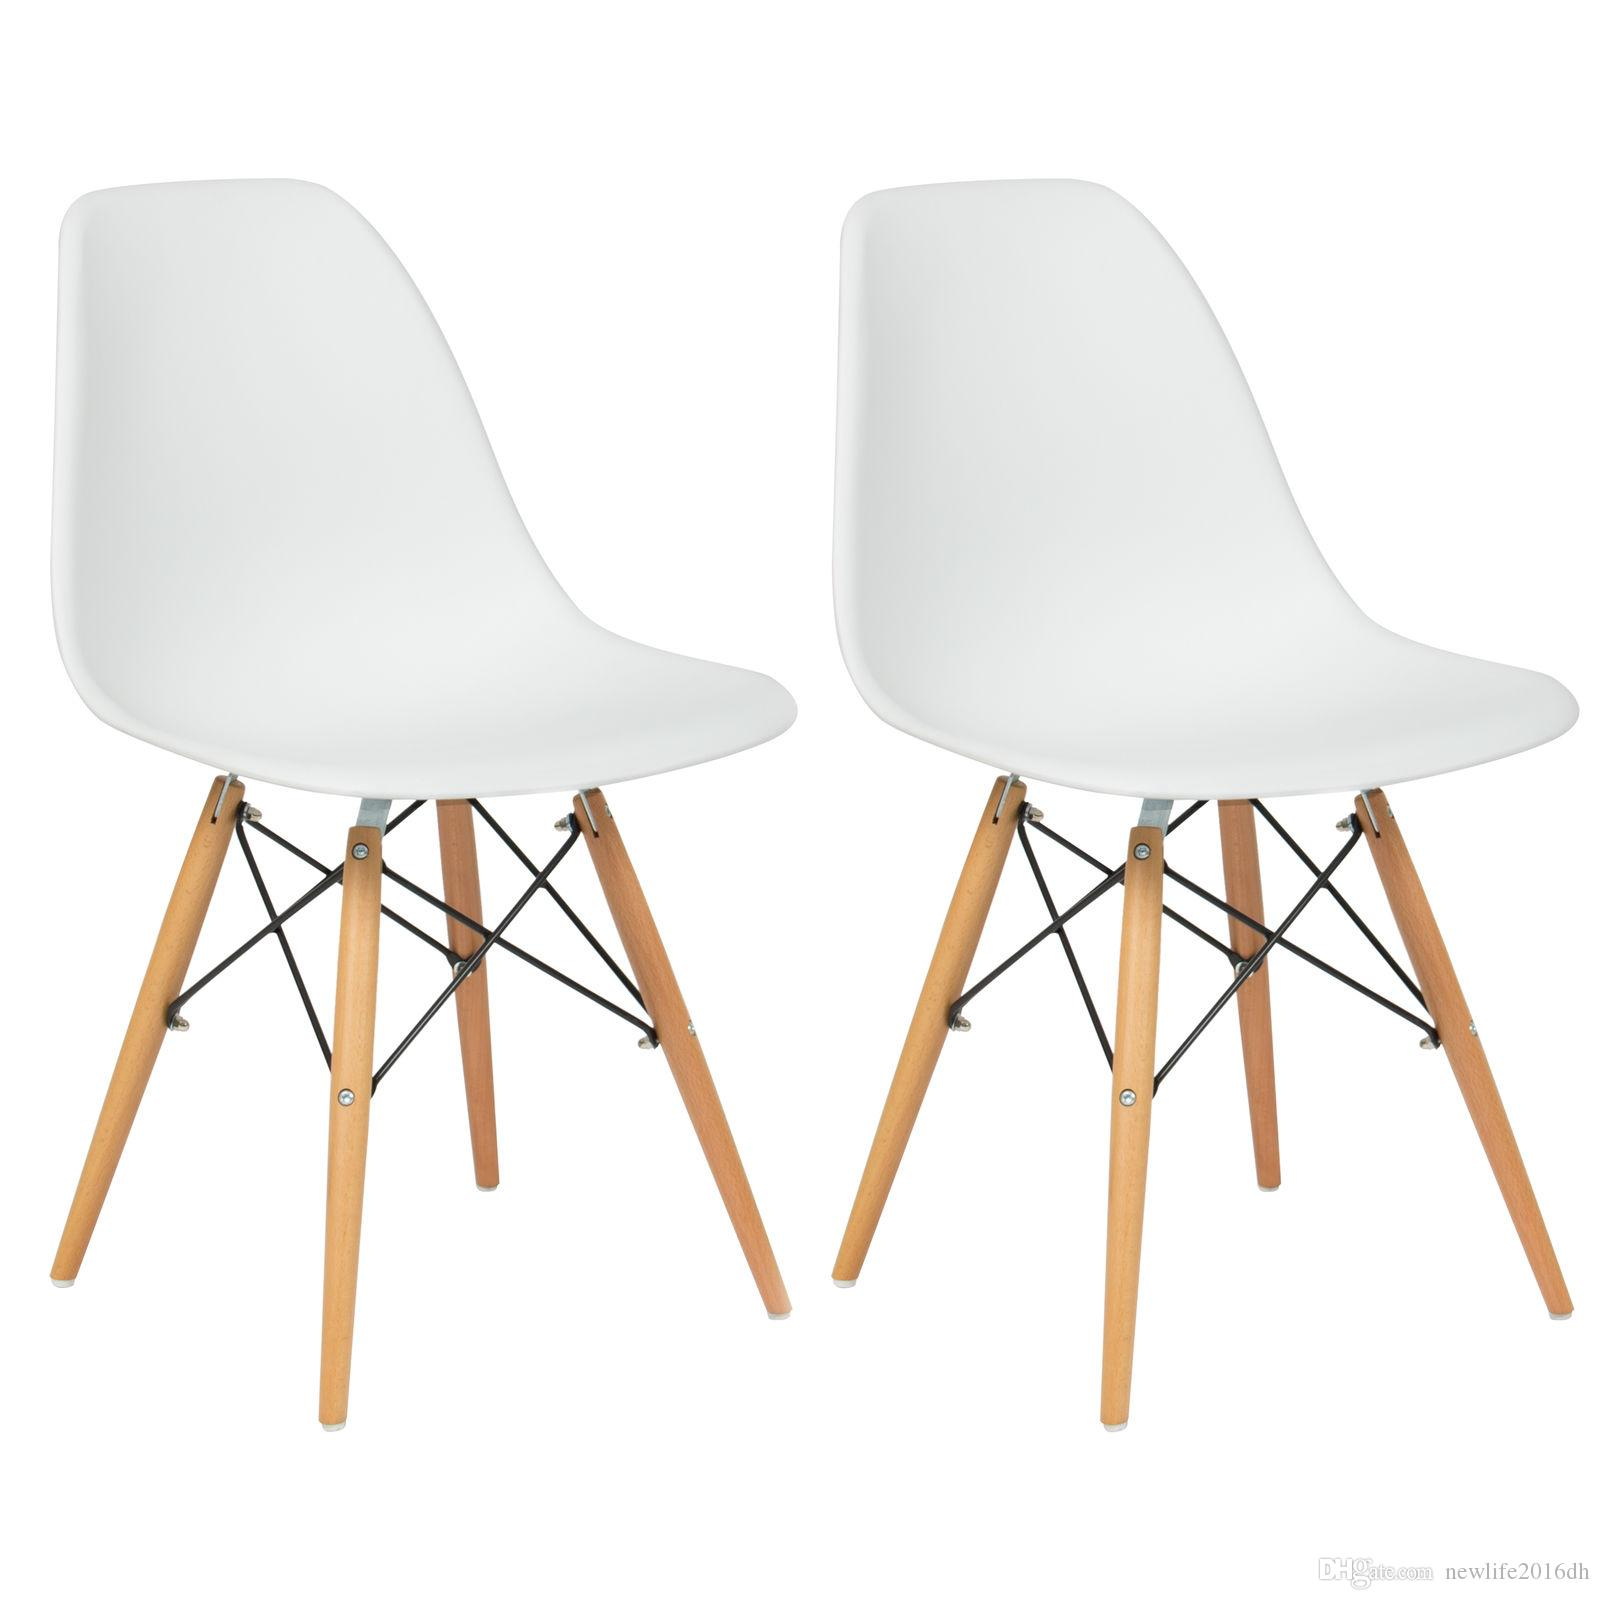 Of 2 Eames Style Dining Chair Mid Century Modern Molded Plastic